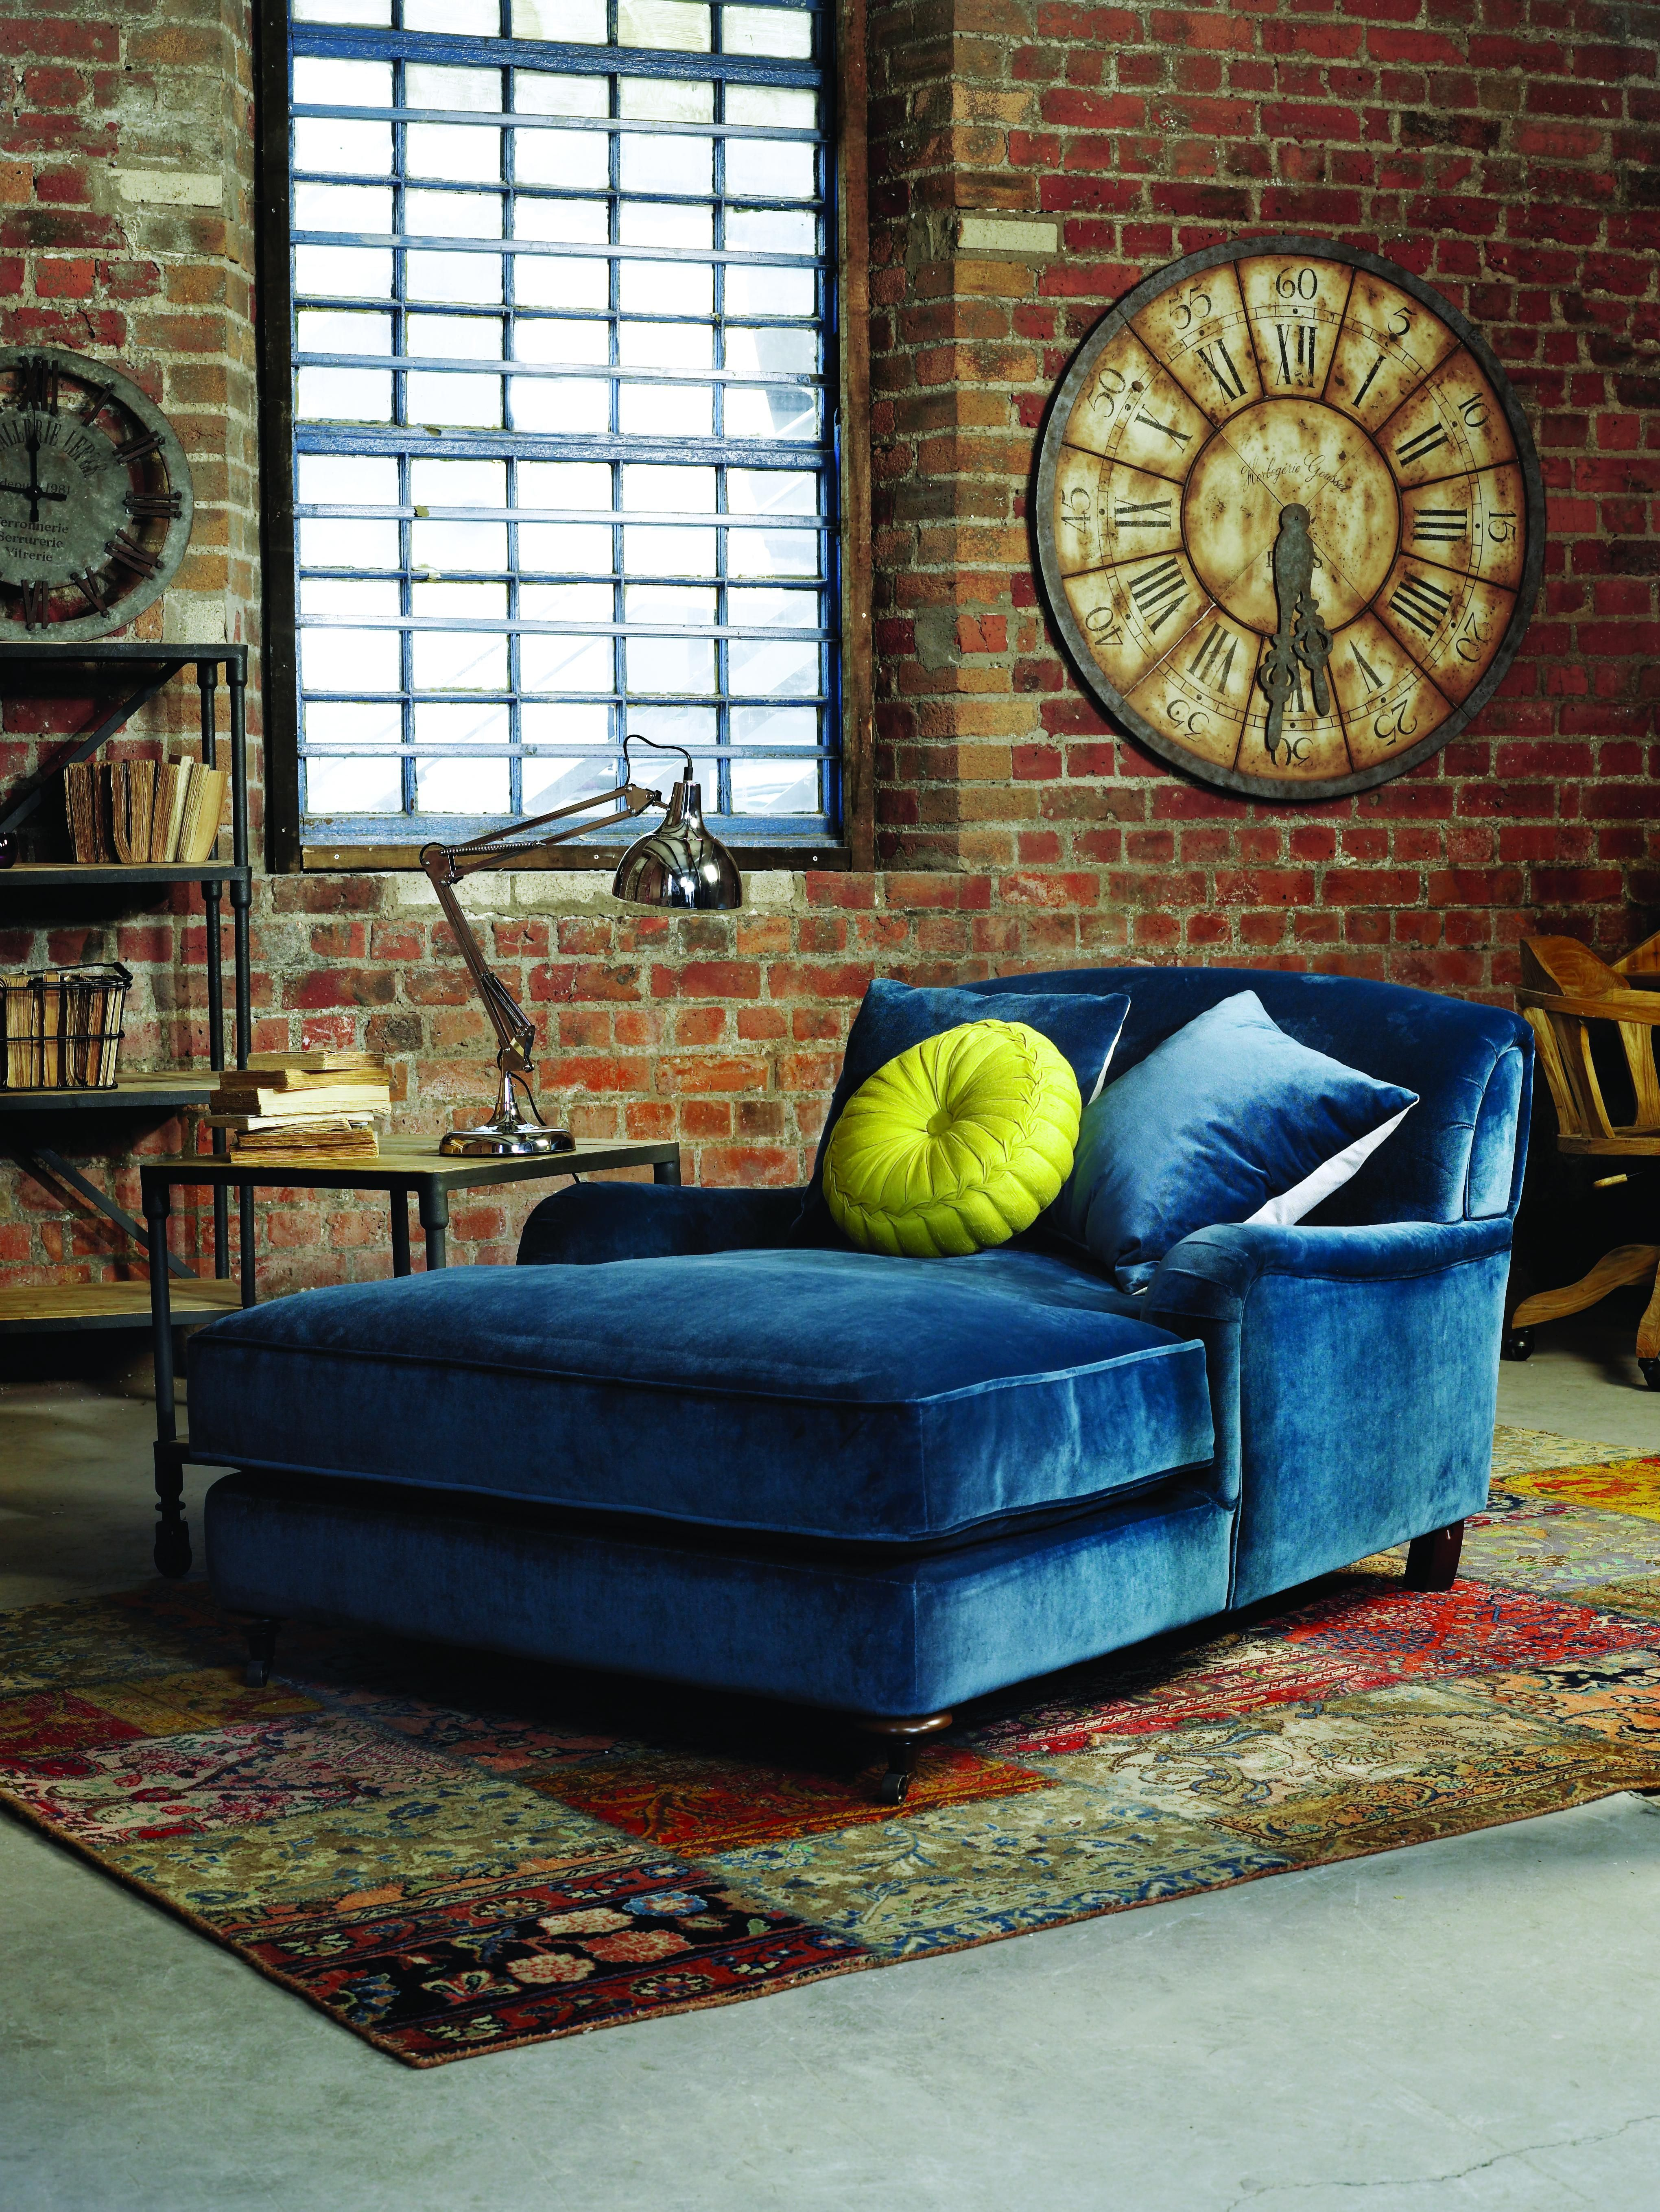 21 Different Style To Decorate Home With Blue Velvet Sofa | Velvet Sofa Living Room, Blue Velvet Sofa, Velvet Furniture